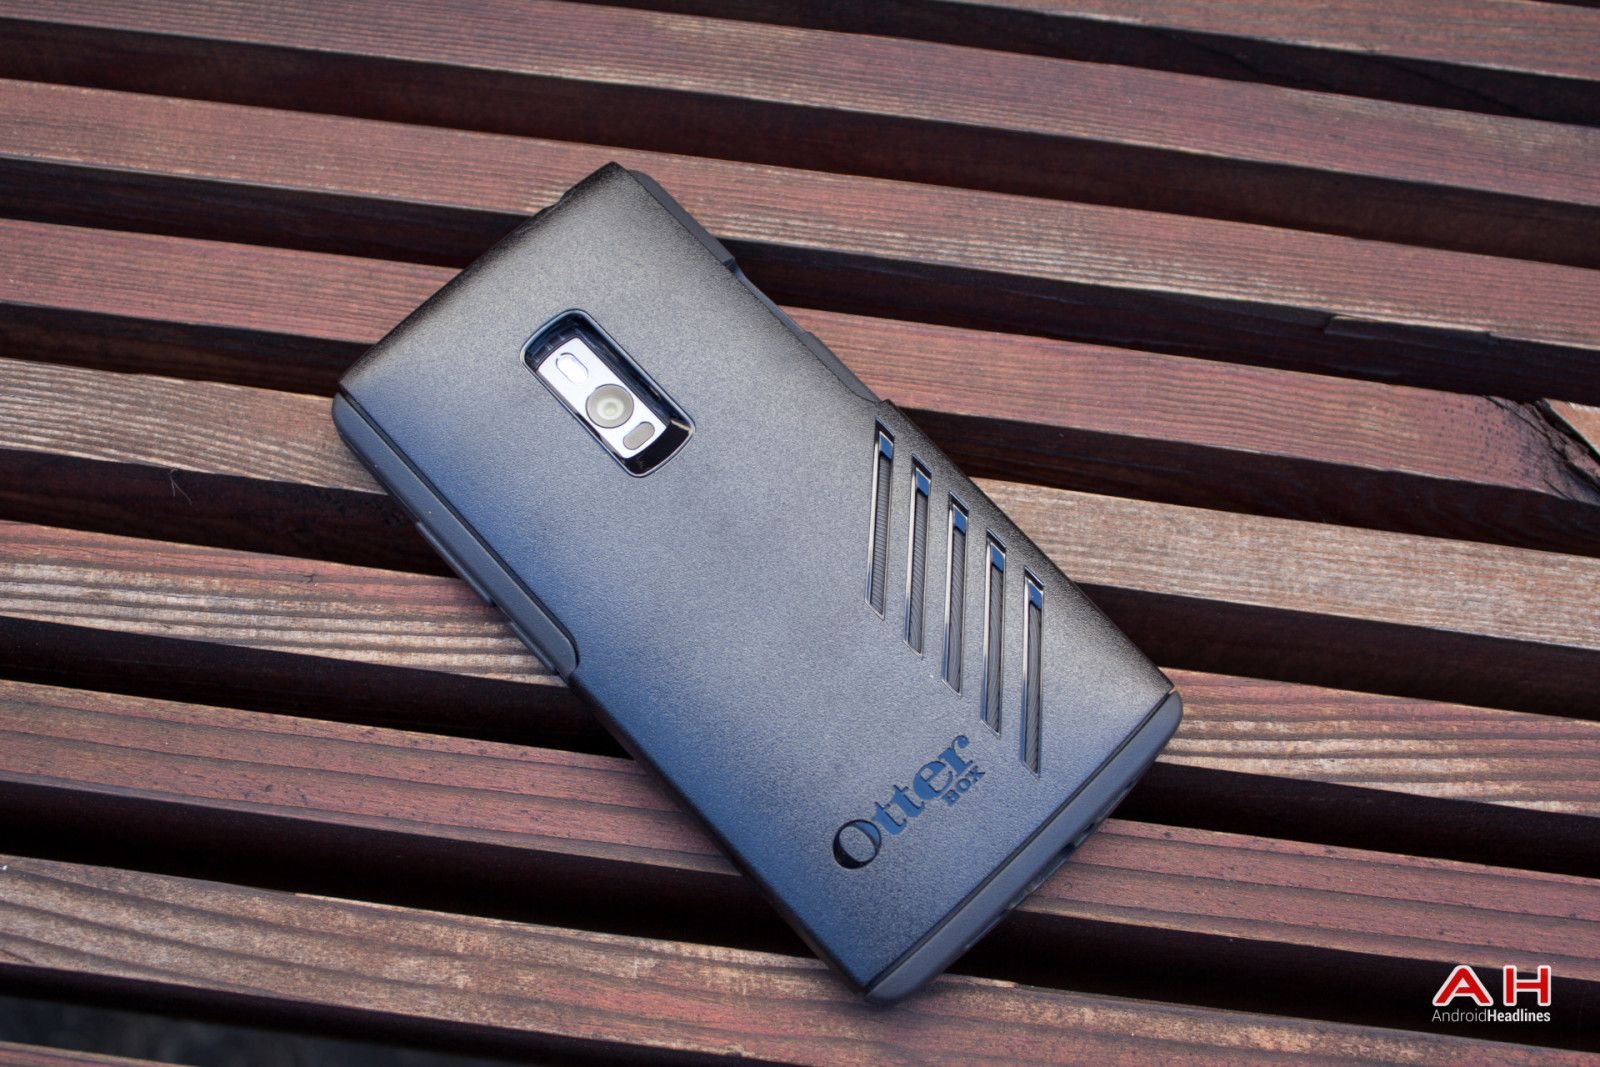 low priced dcb79 29a5f Otterbox,tudia hybride or Silicon case ? - OnePlus Community